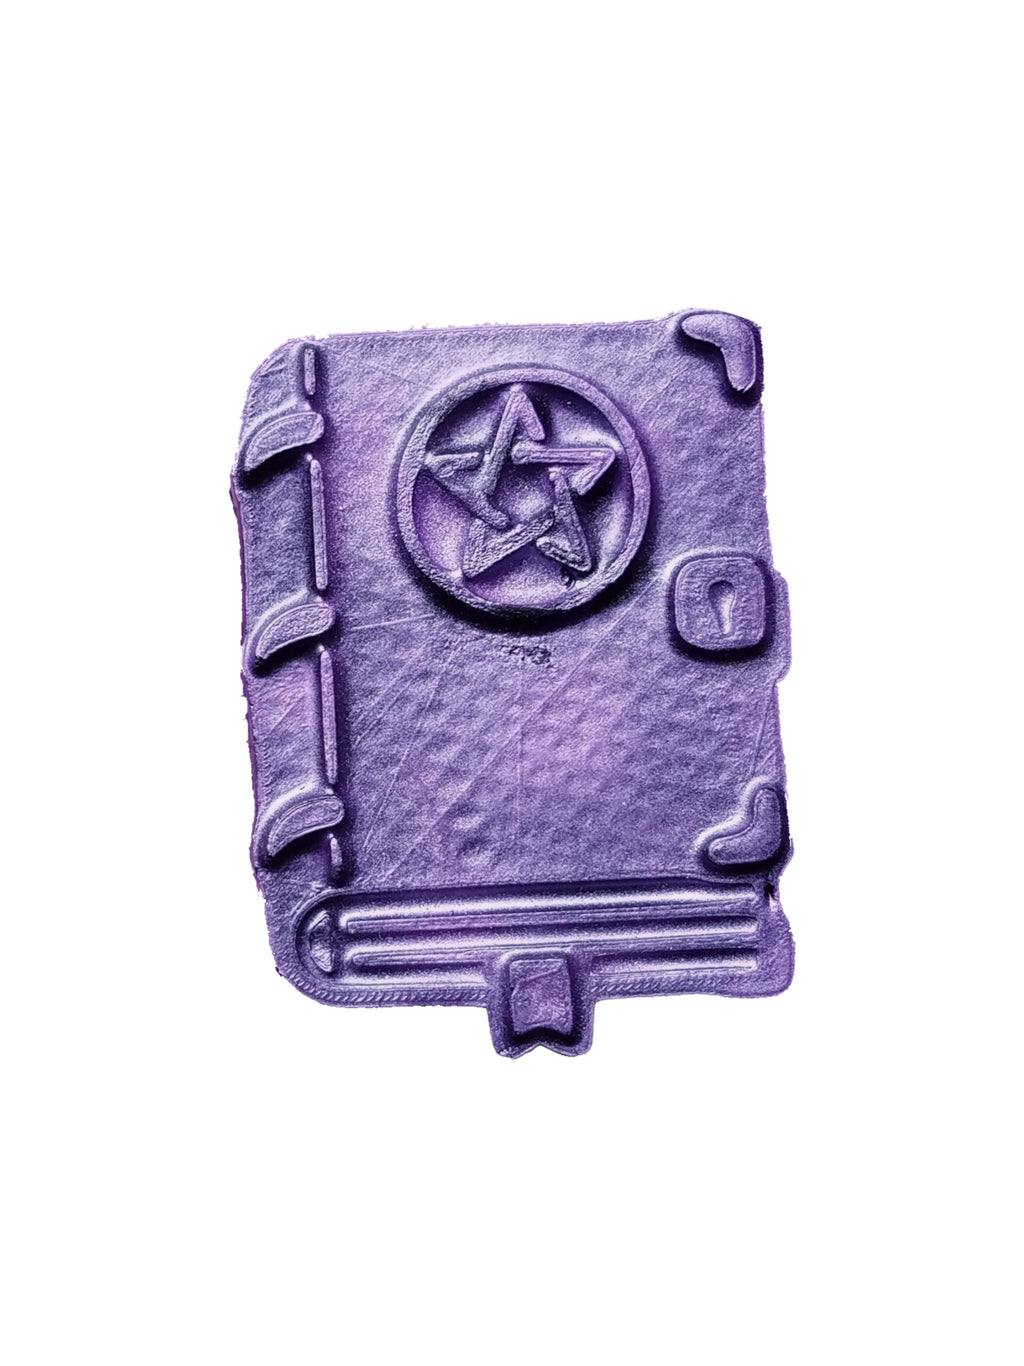 Cosmic Spellbook Soap